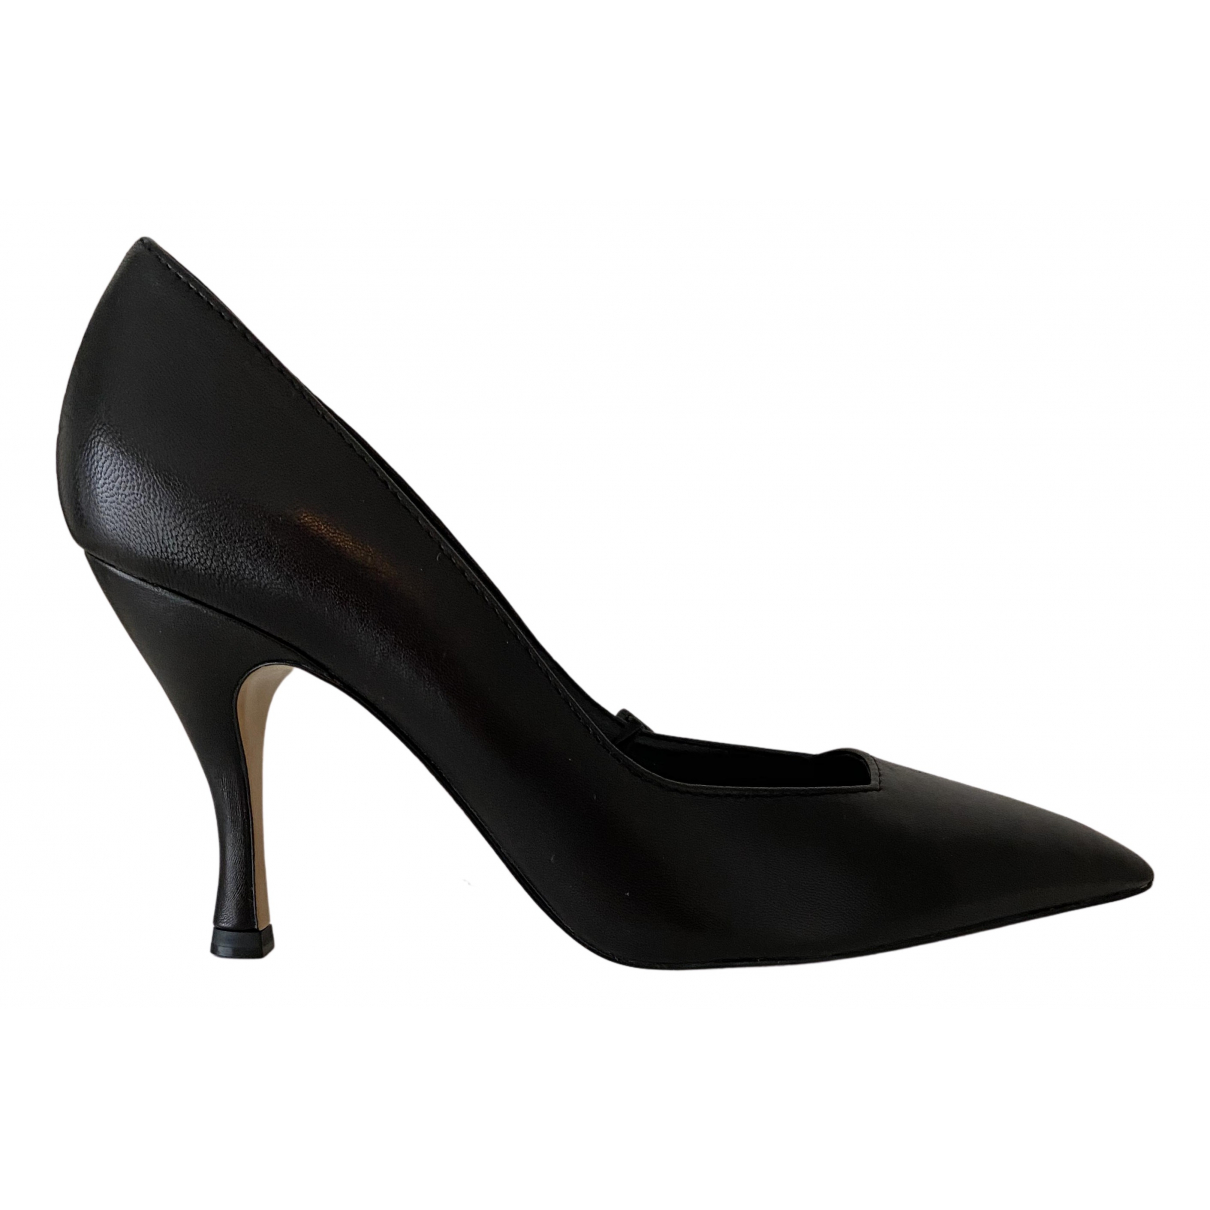 Massimo Dutti N Black Leather Heels for Women 38 EU